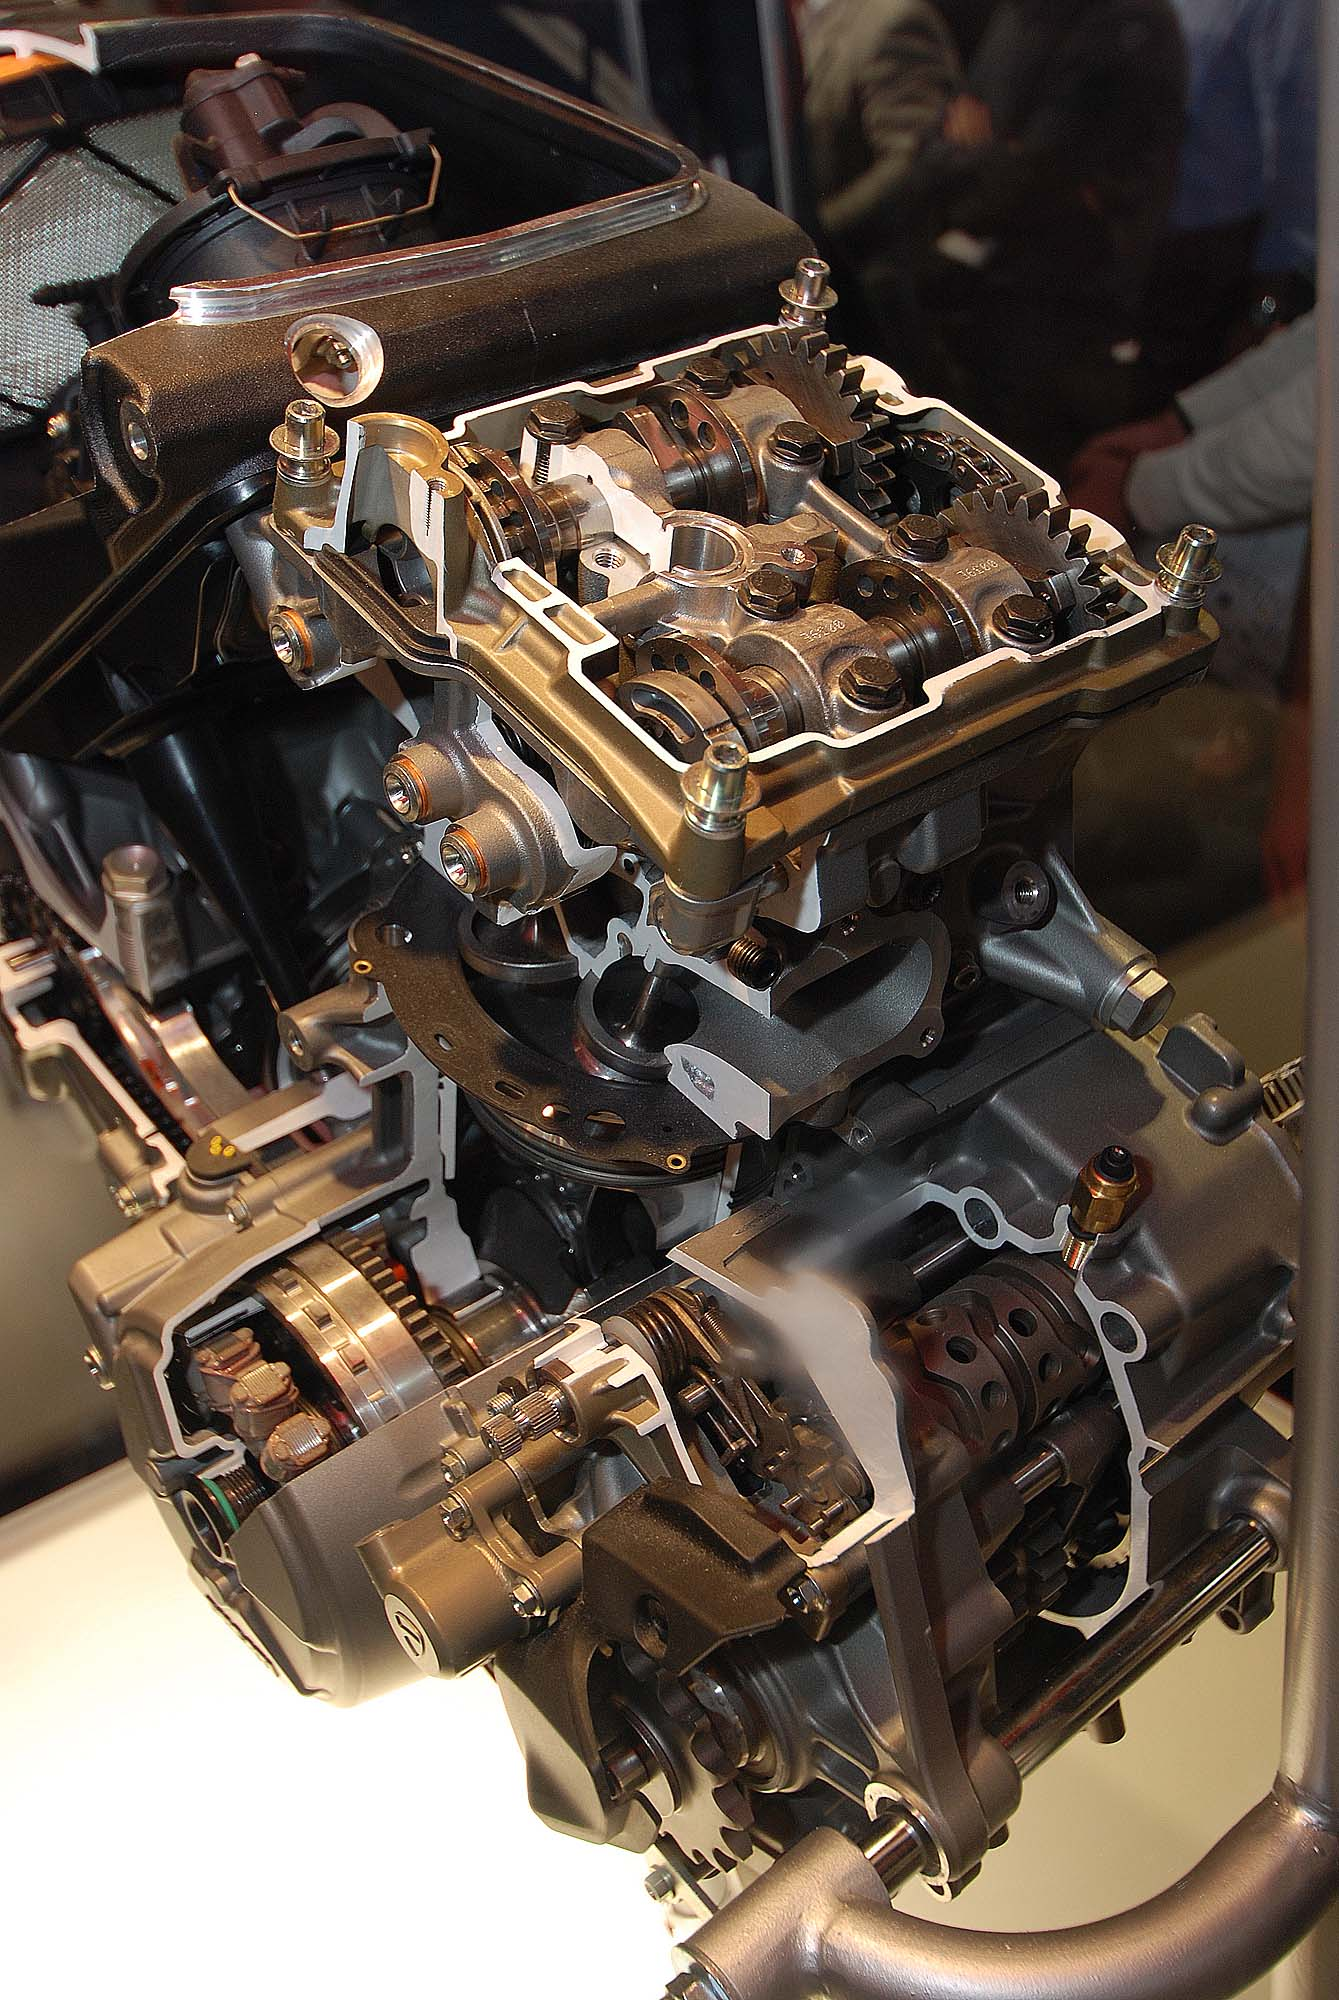 Cutaway Photos Of The Ducati Superquadro Engine Asphalt